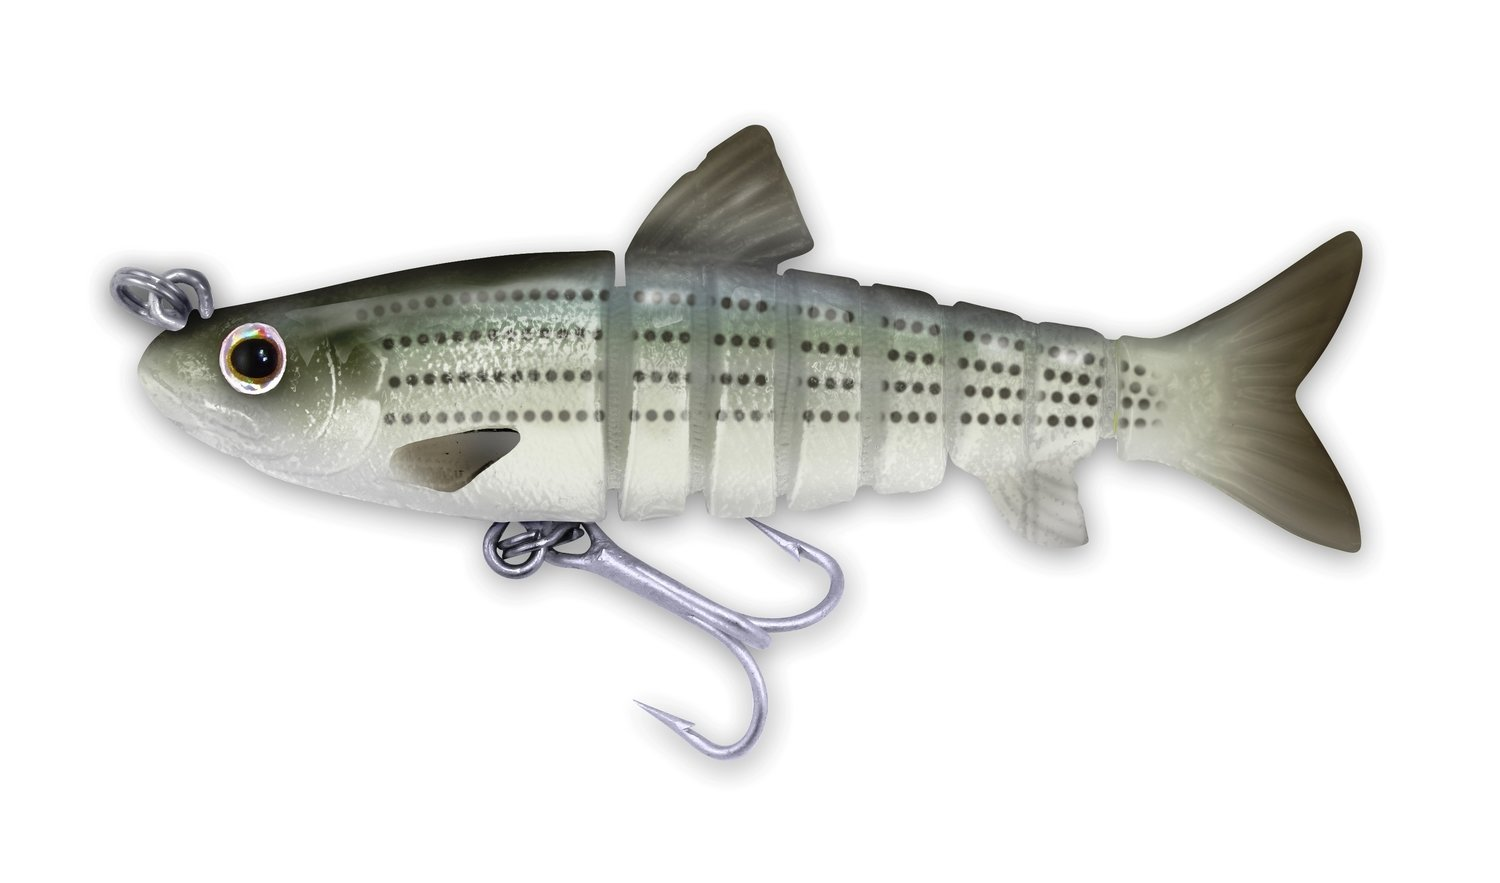 113 Vudu Mullet Striped Mullet 4.5 inch 1/2 oz (1/pk)